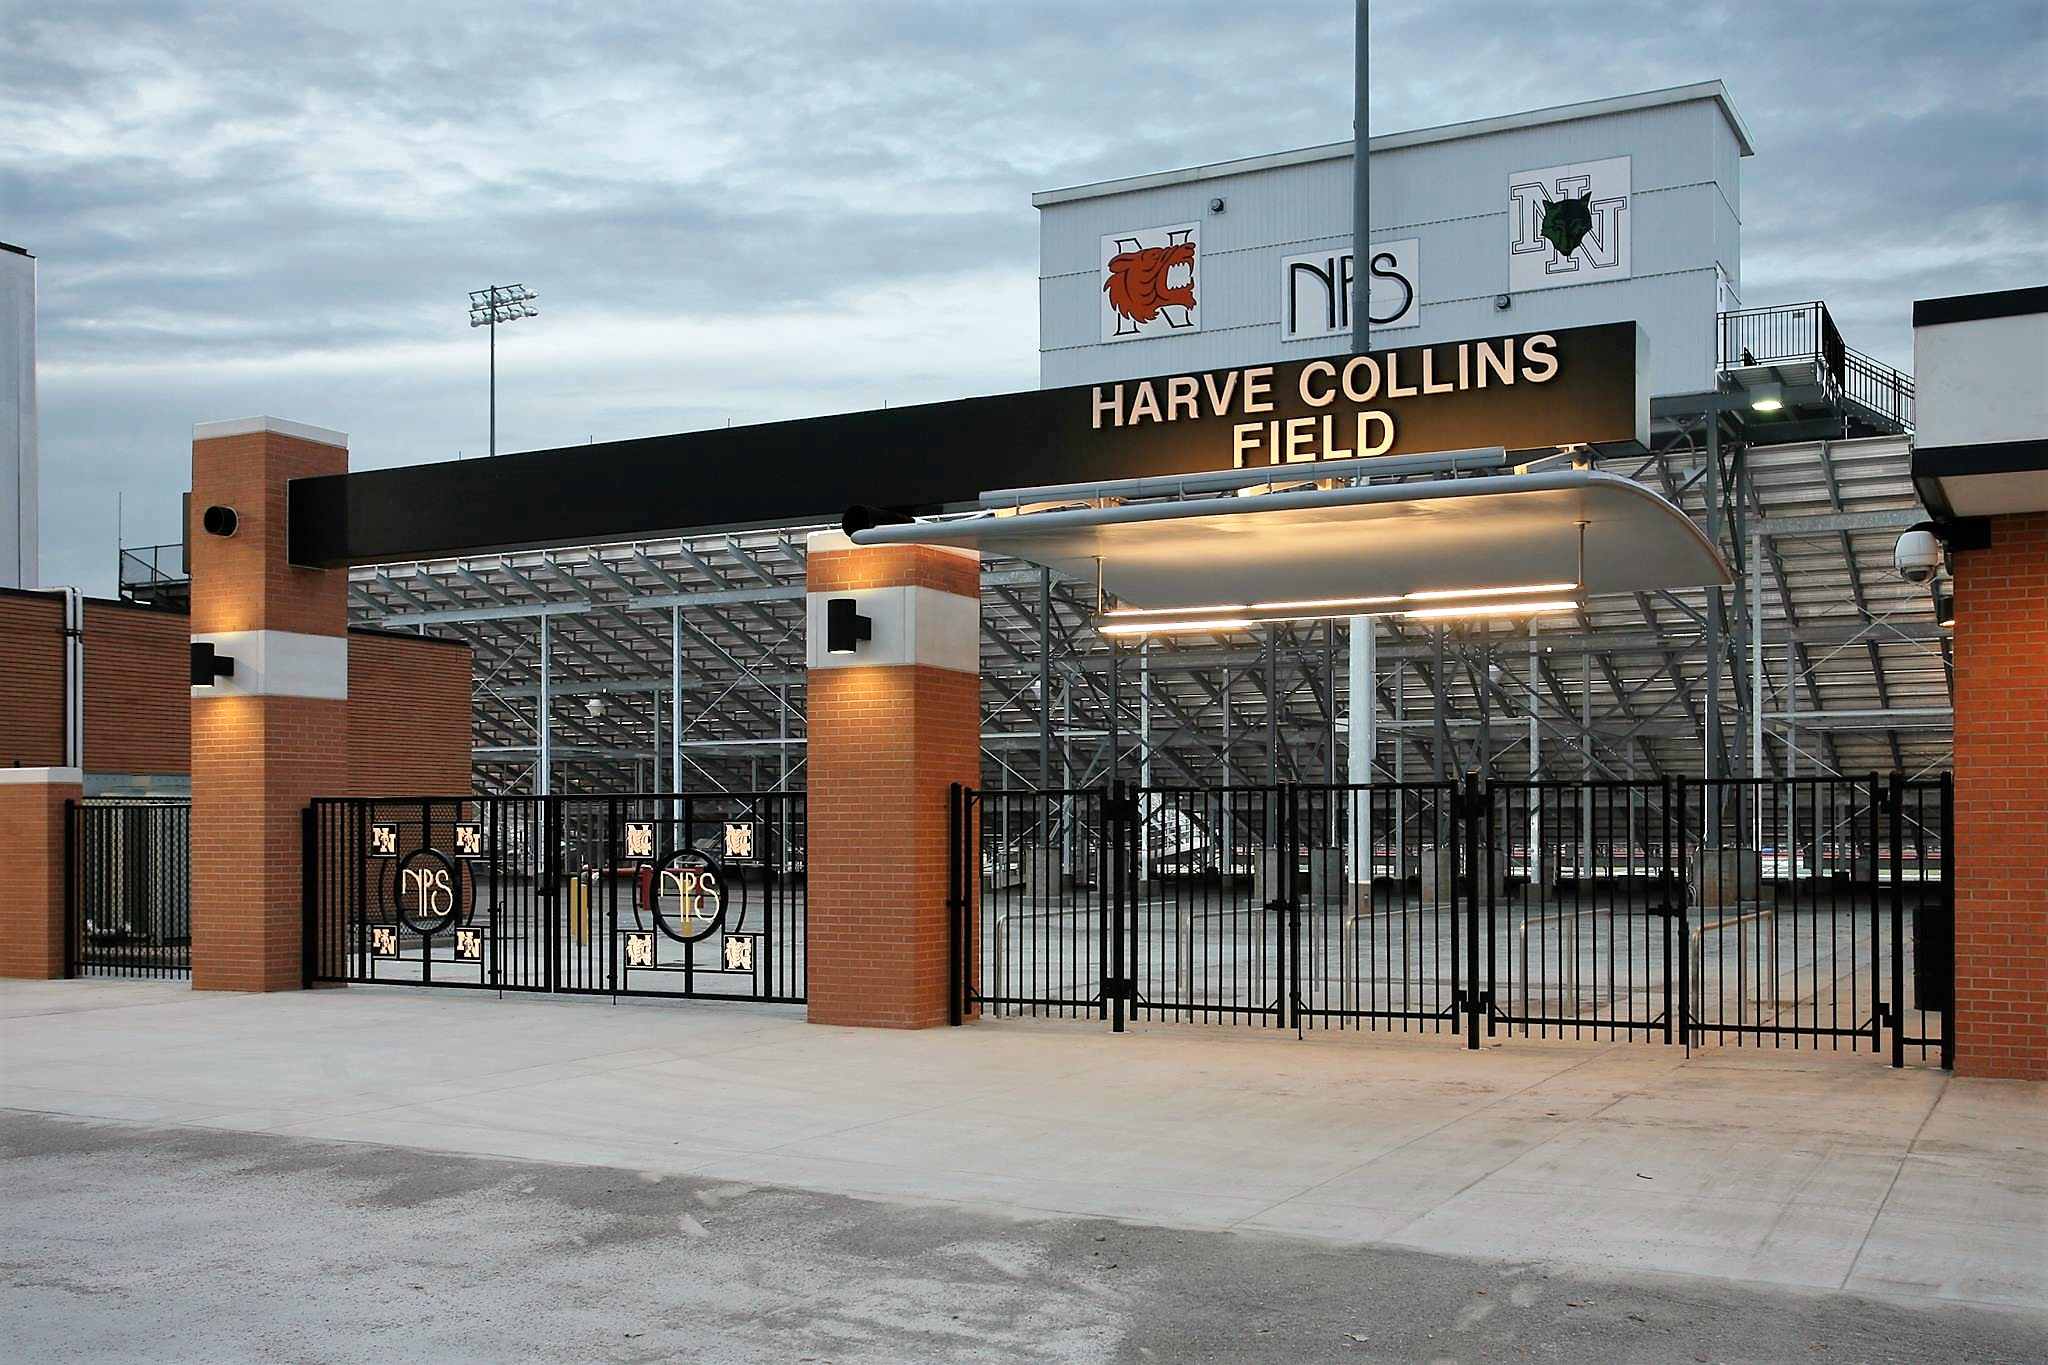 NHS-Harve Collins Field-Entrance Gate